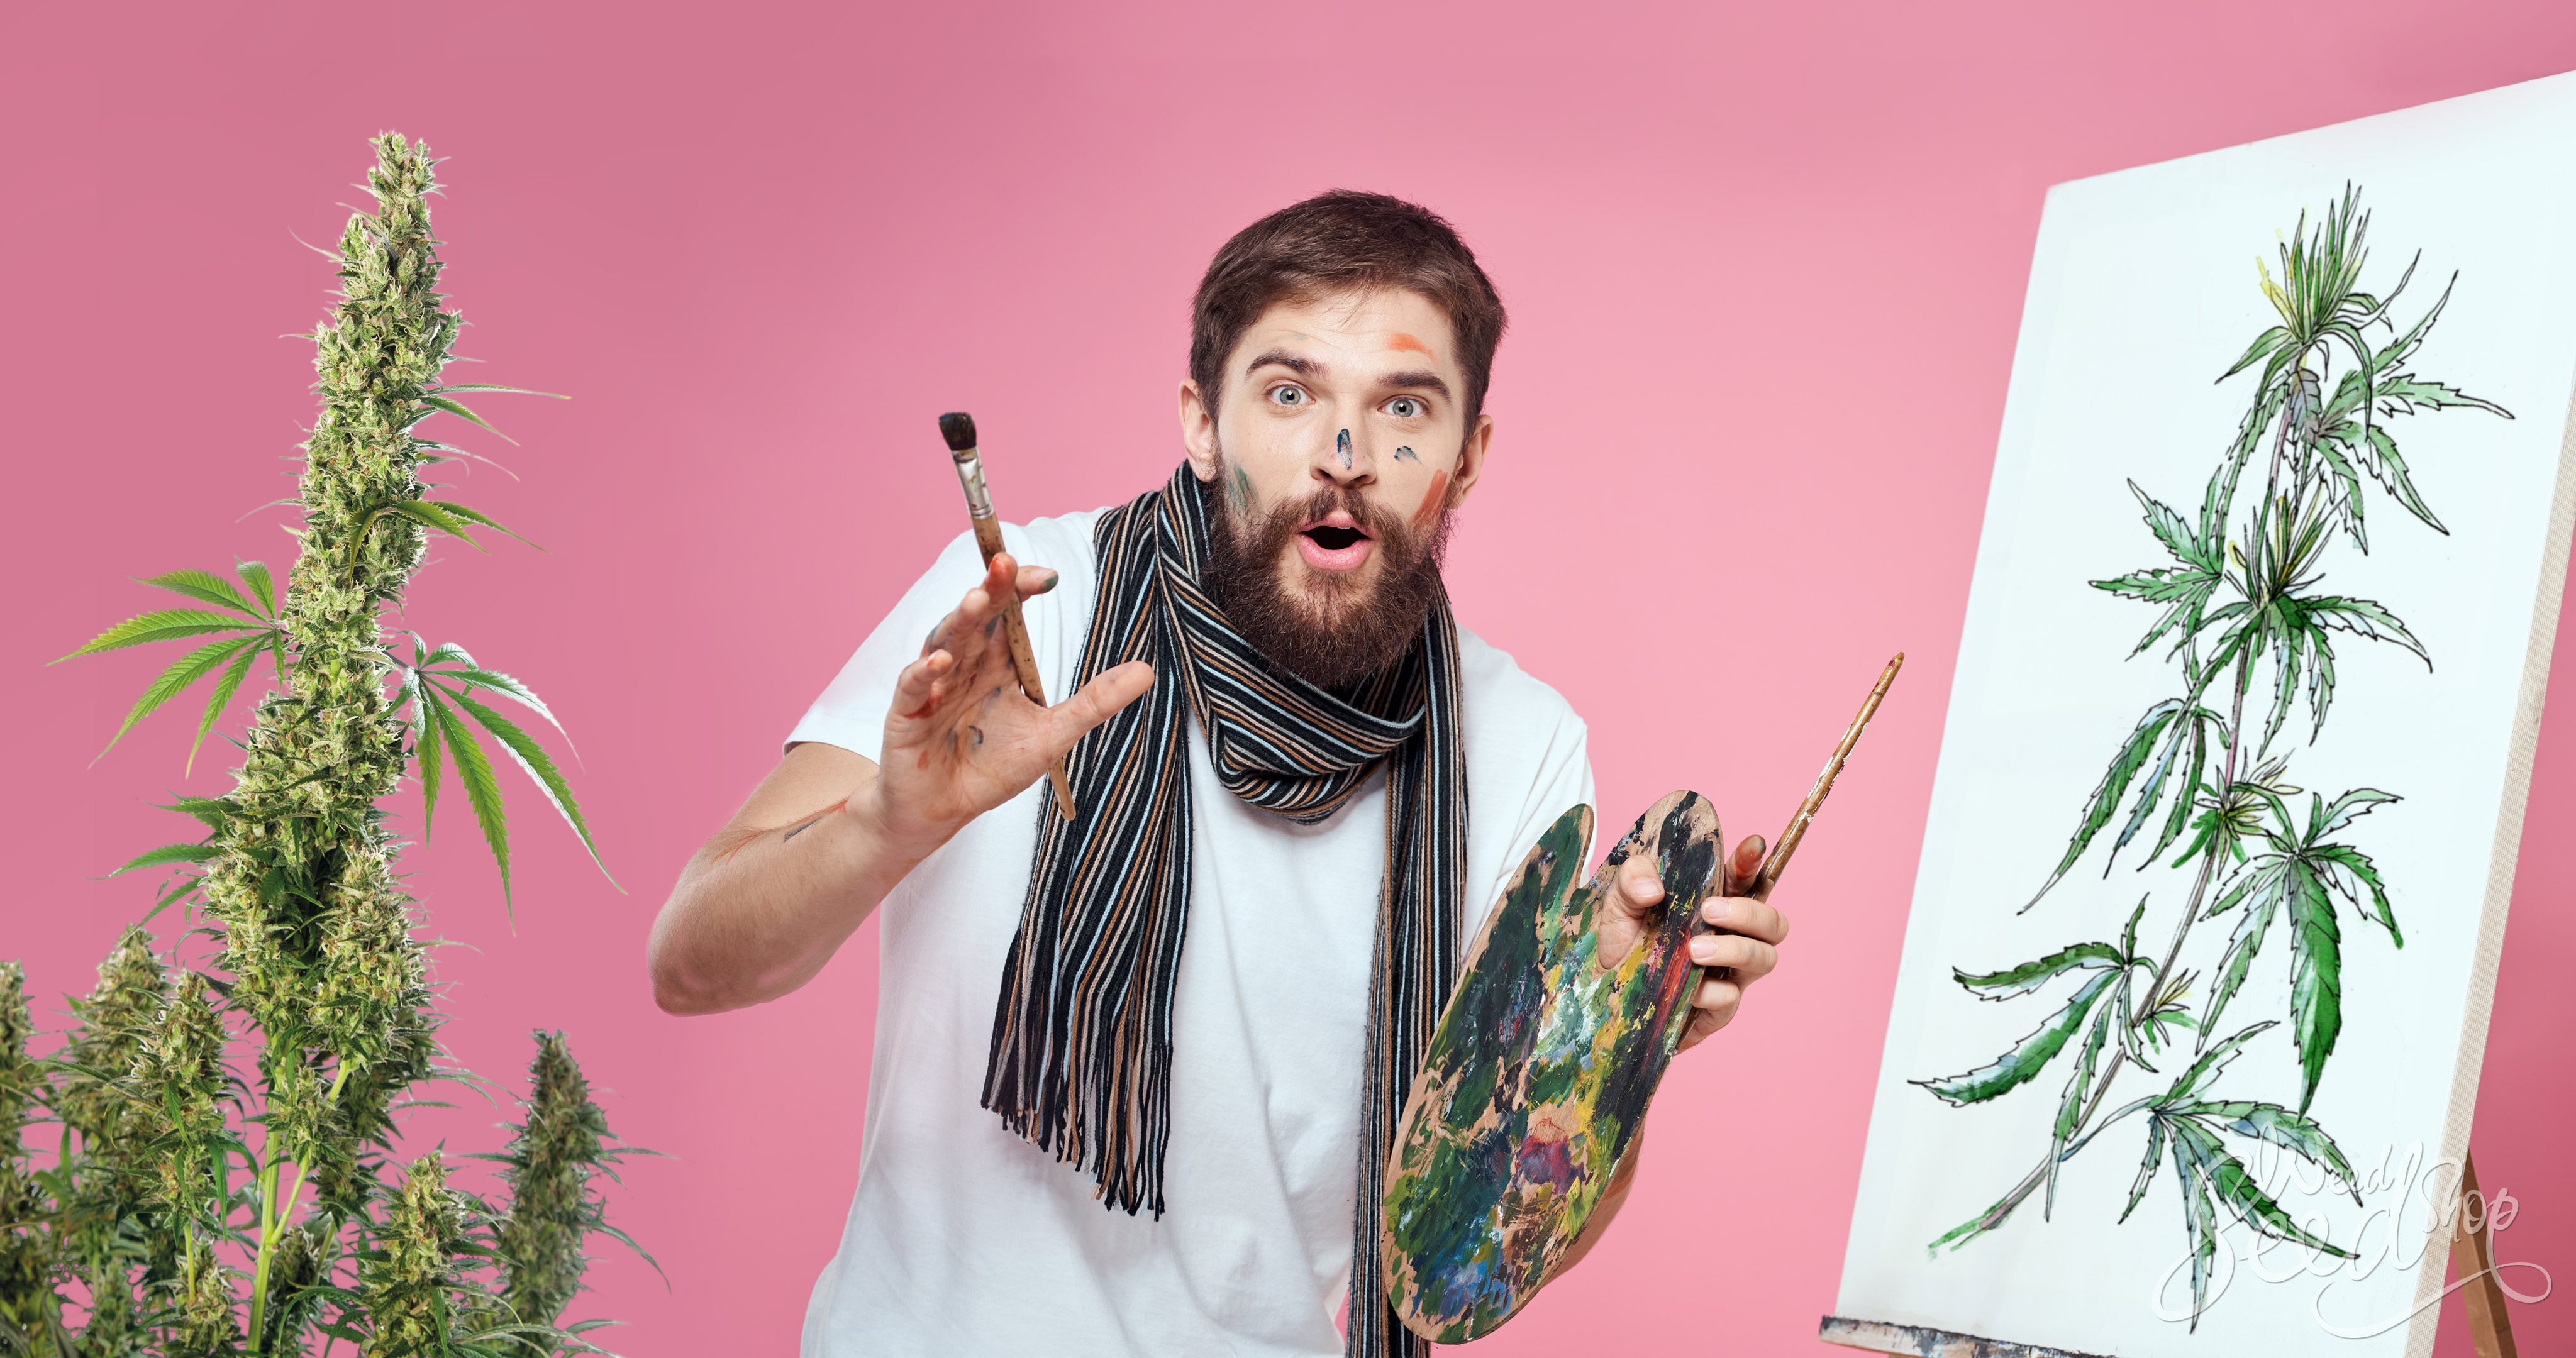 Does Cannabis Make You More Creative? - WeedSeedShop